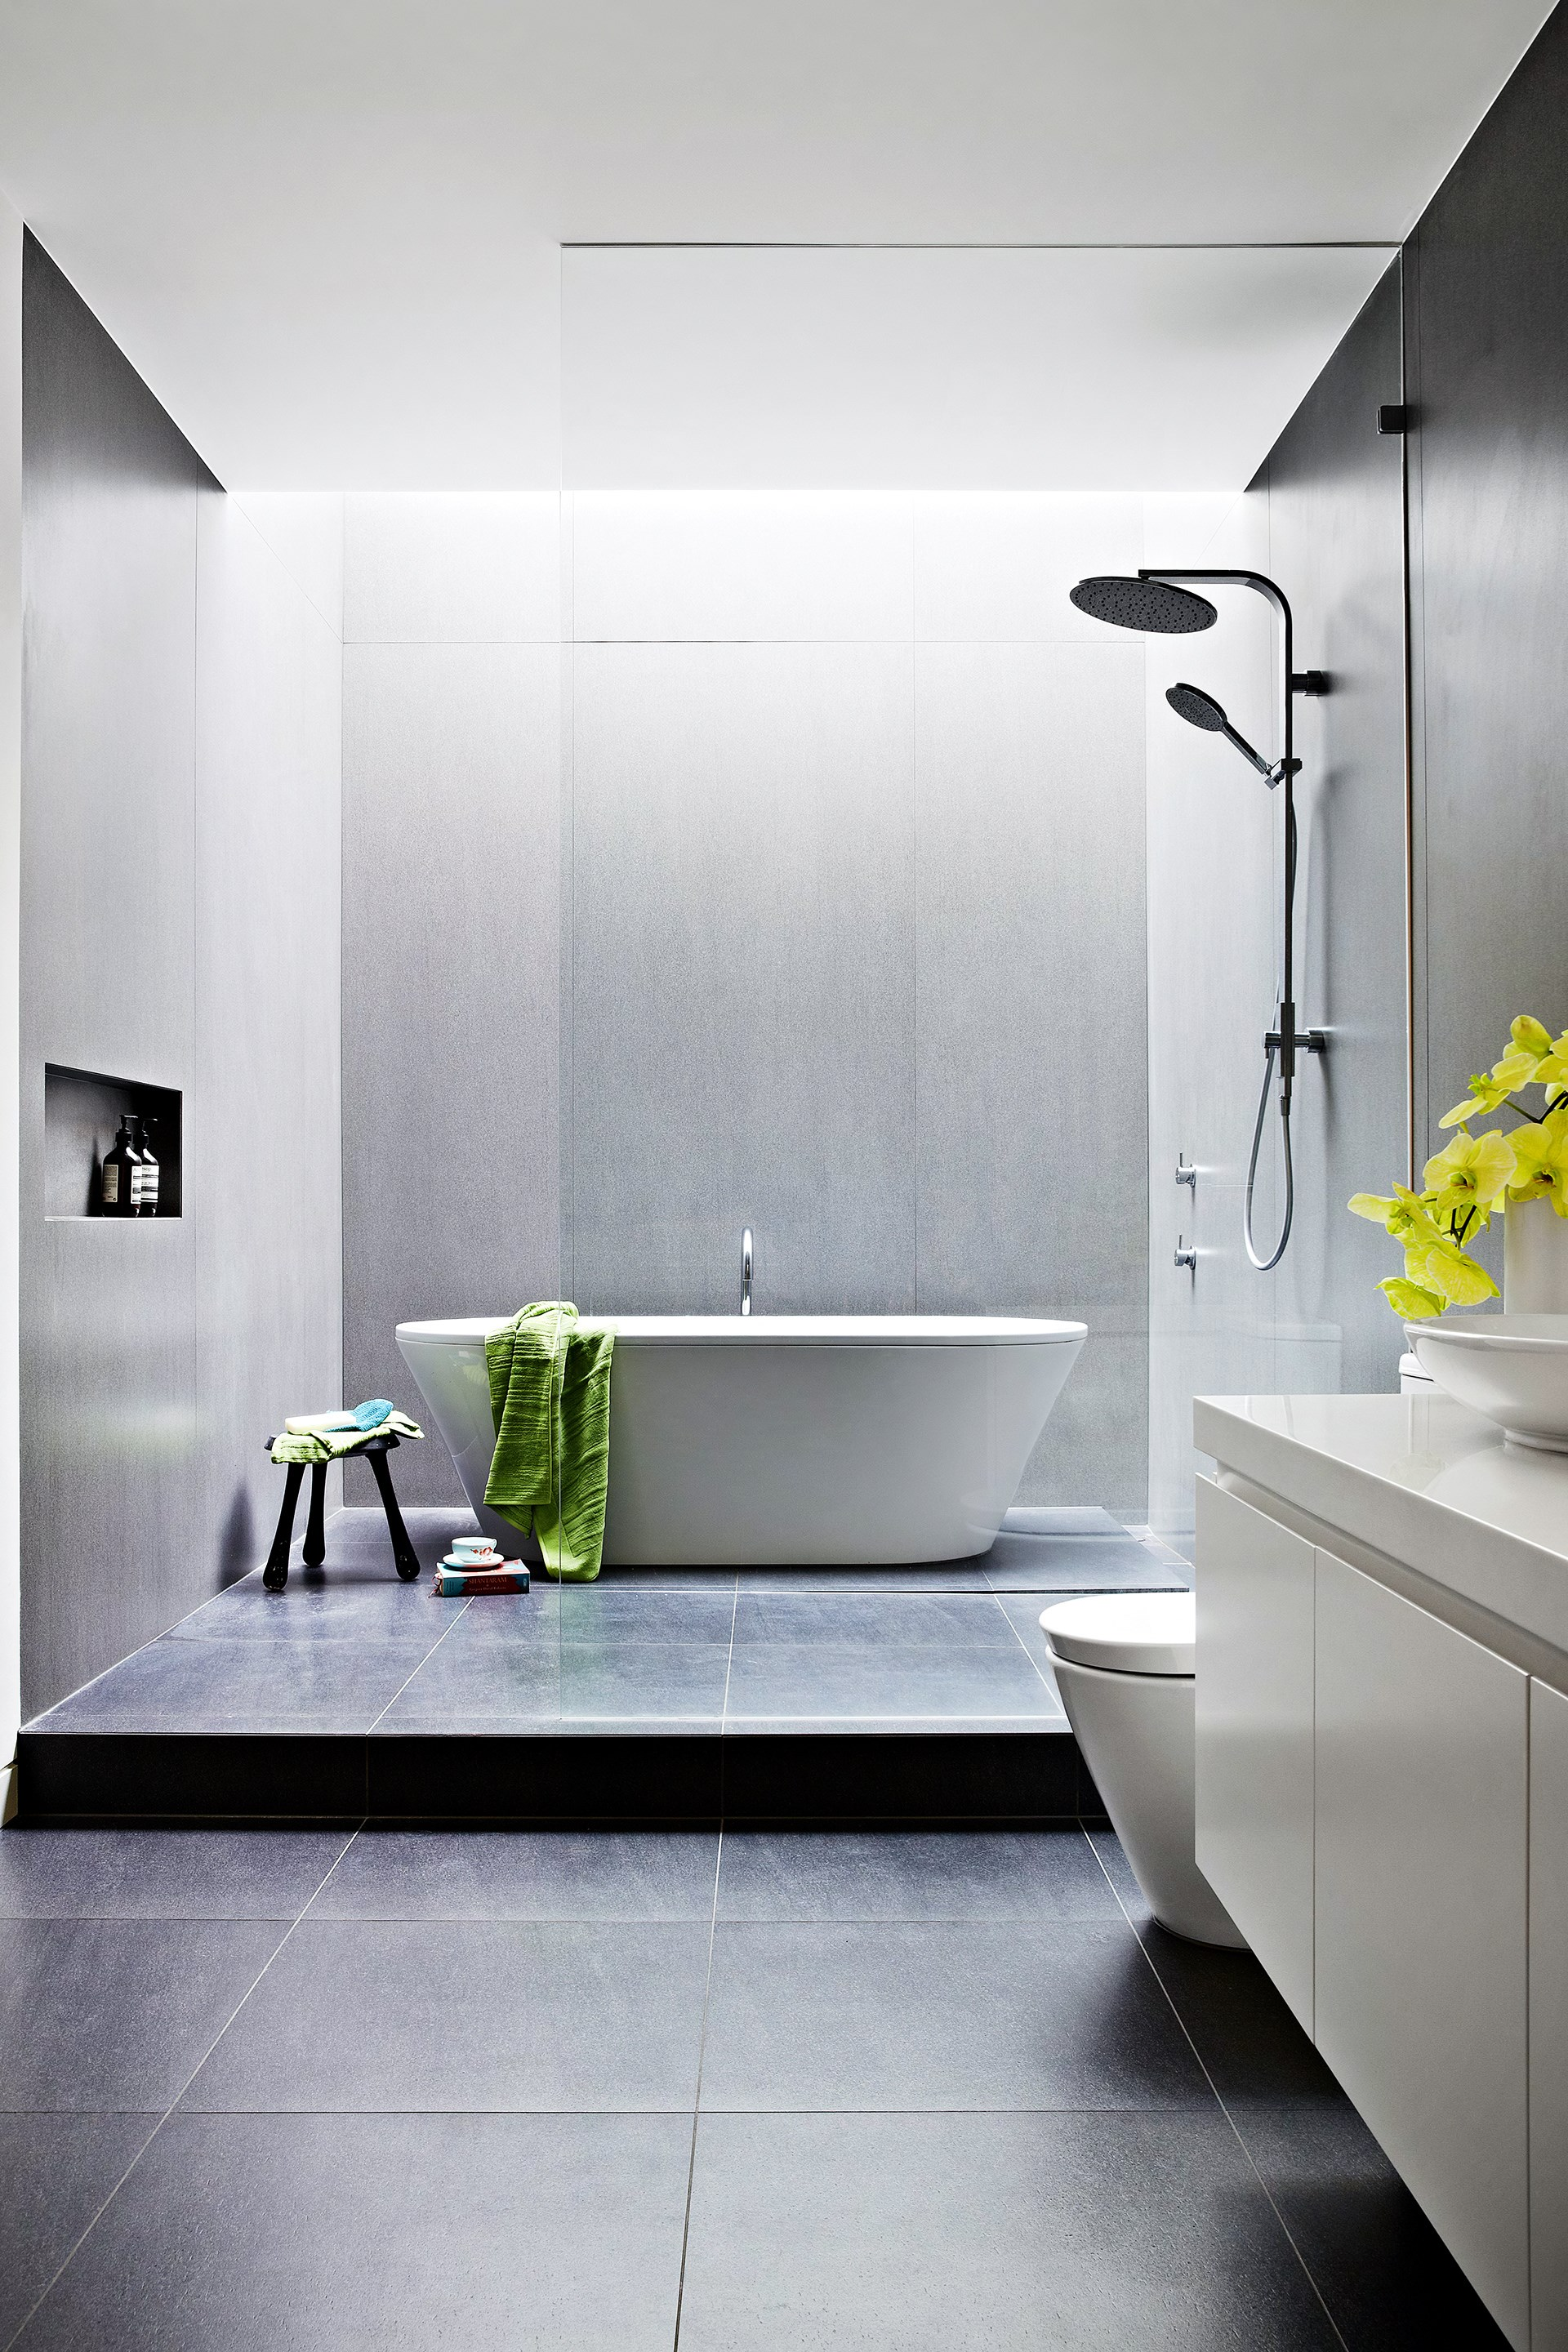 """Cross over to the dark side and browse our gallery of [11 black bathrooms you'll love](http://www.homestolove.com.au/cross-over-to-the-dark-side-11-black-bathrooms-3041